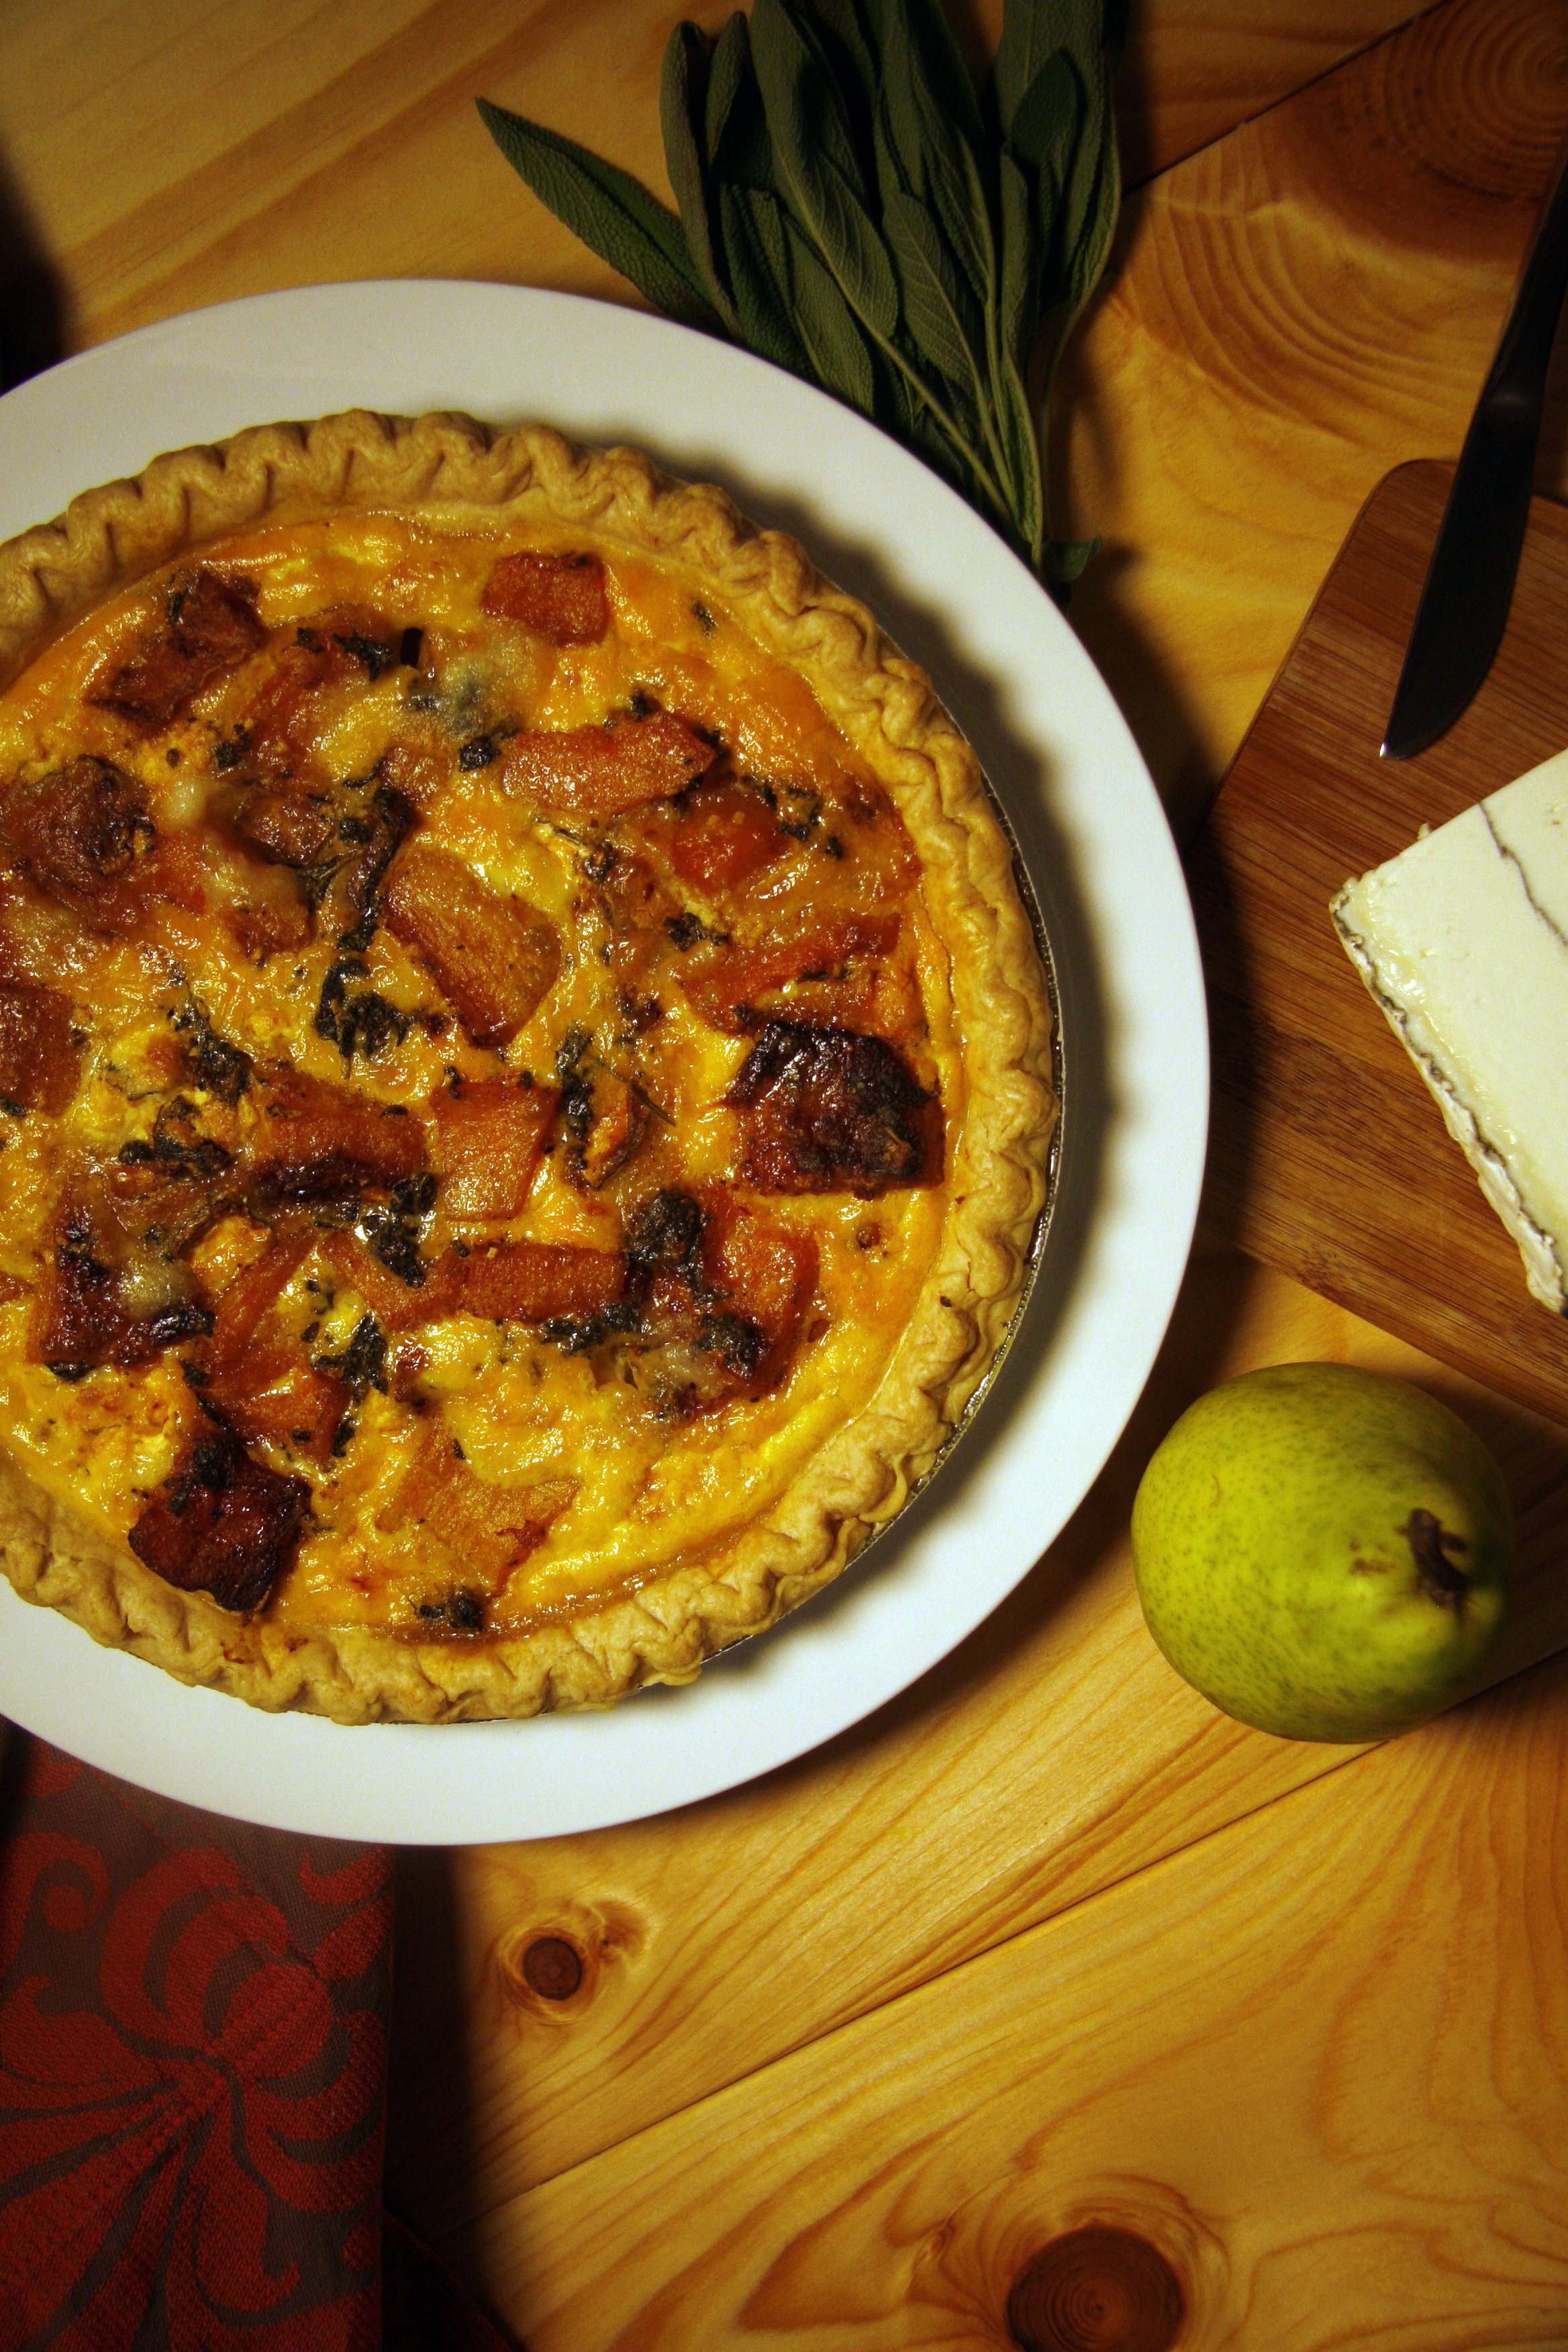 ... Spiced Butternut Squash, Goat Cheese and Fried Sage in Garlic Quiche